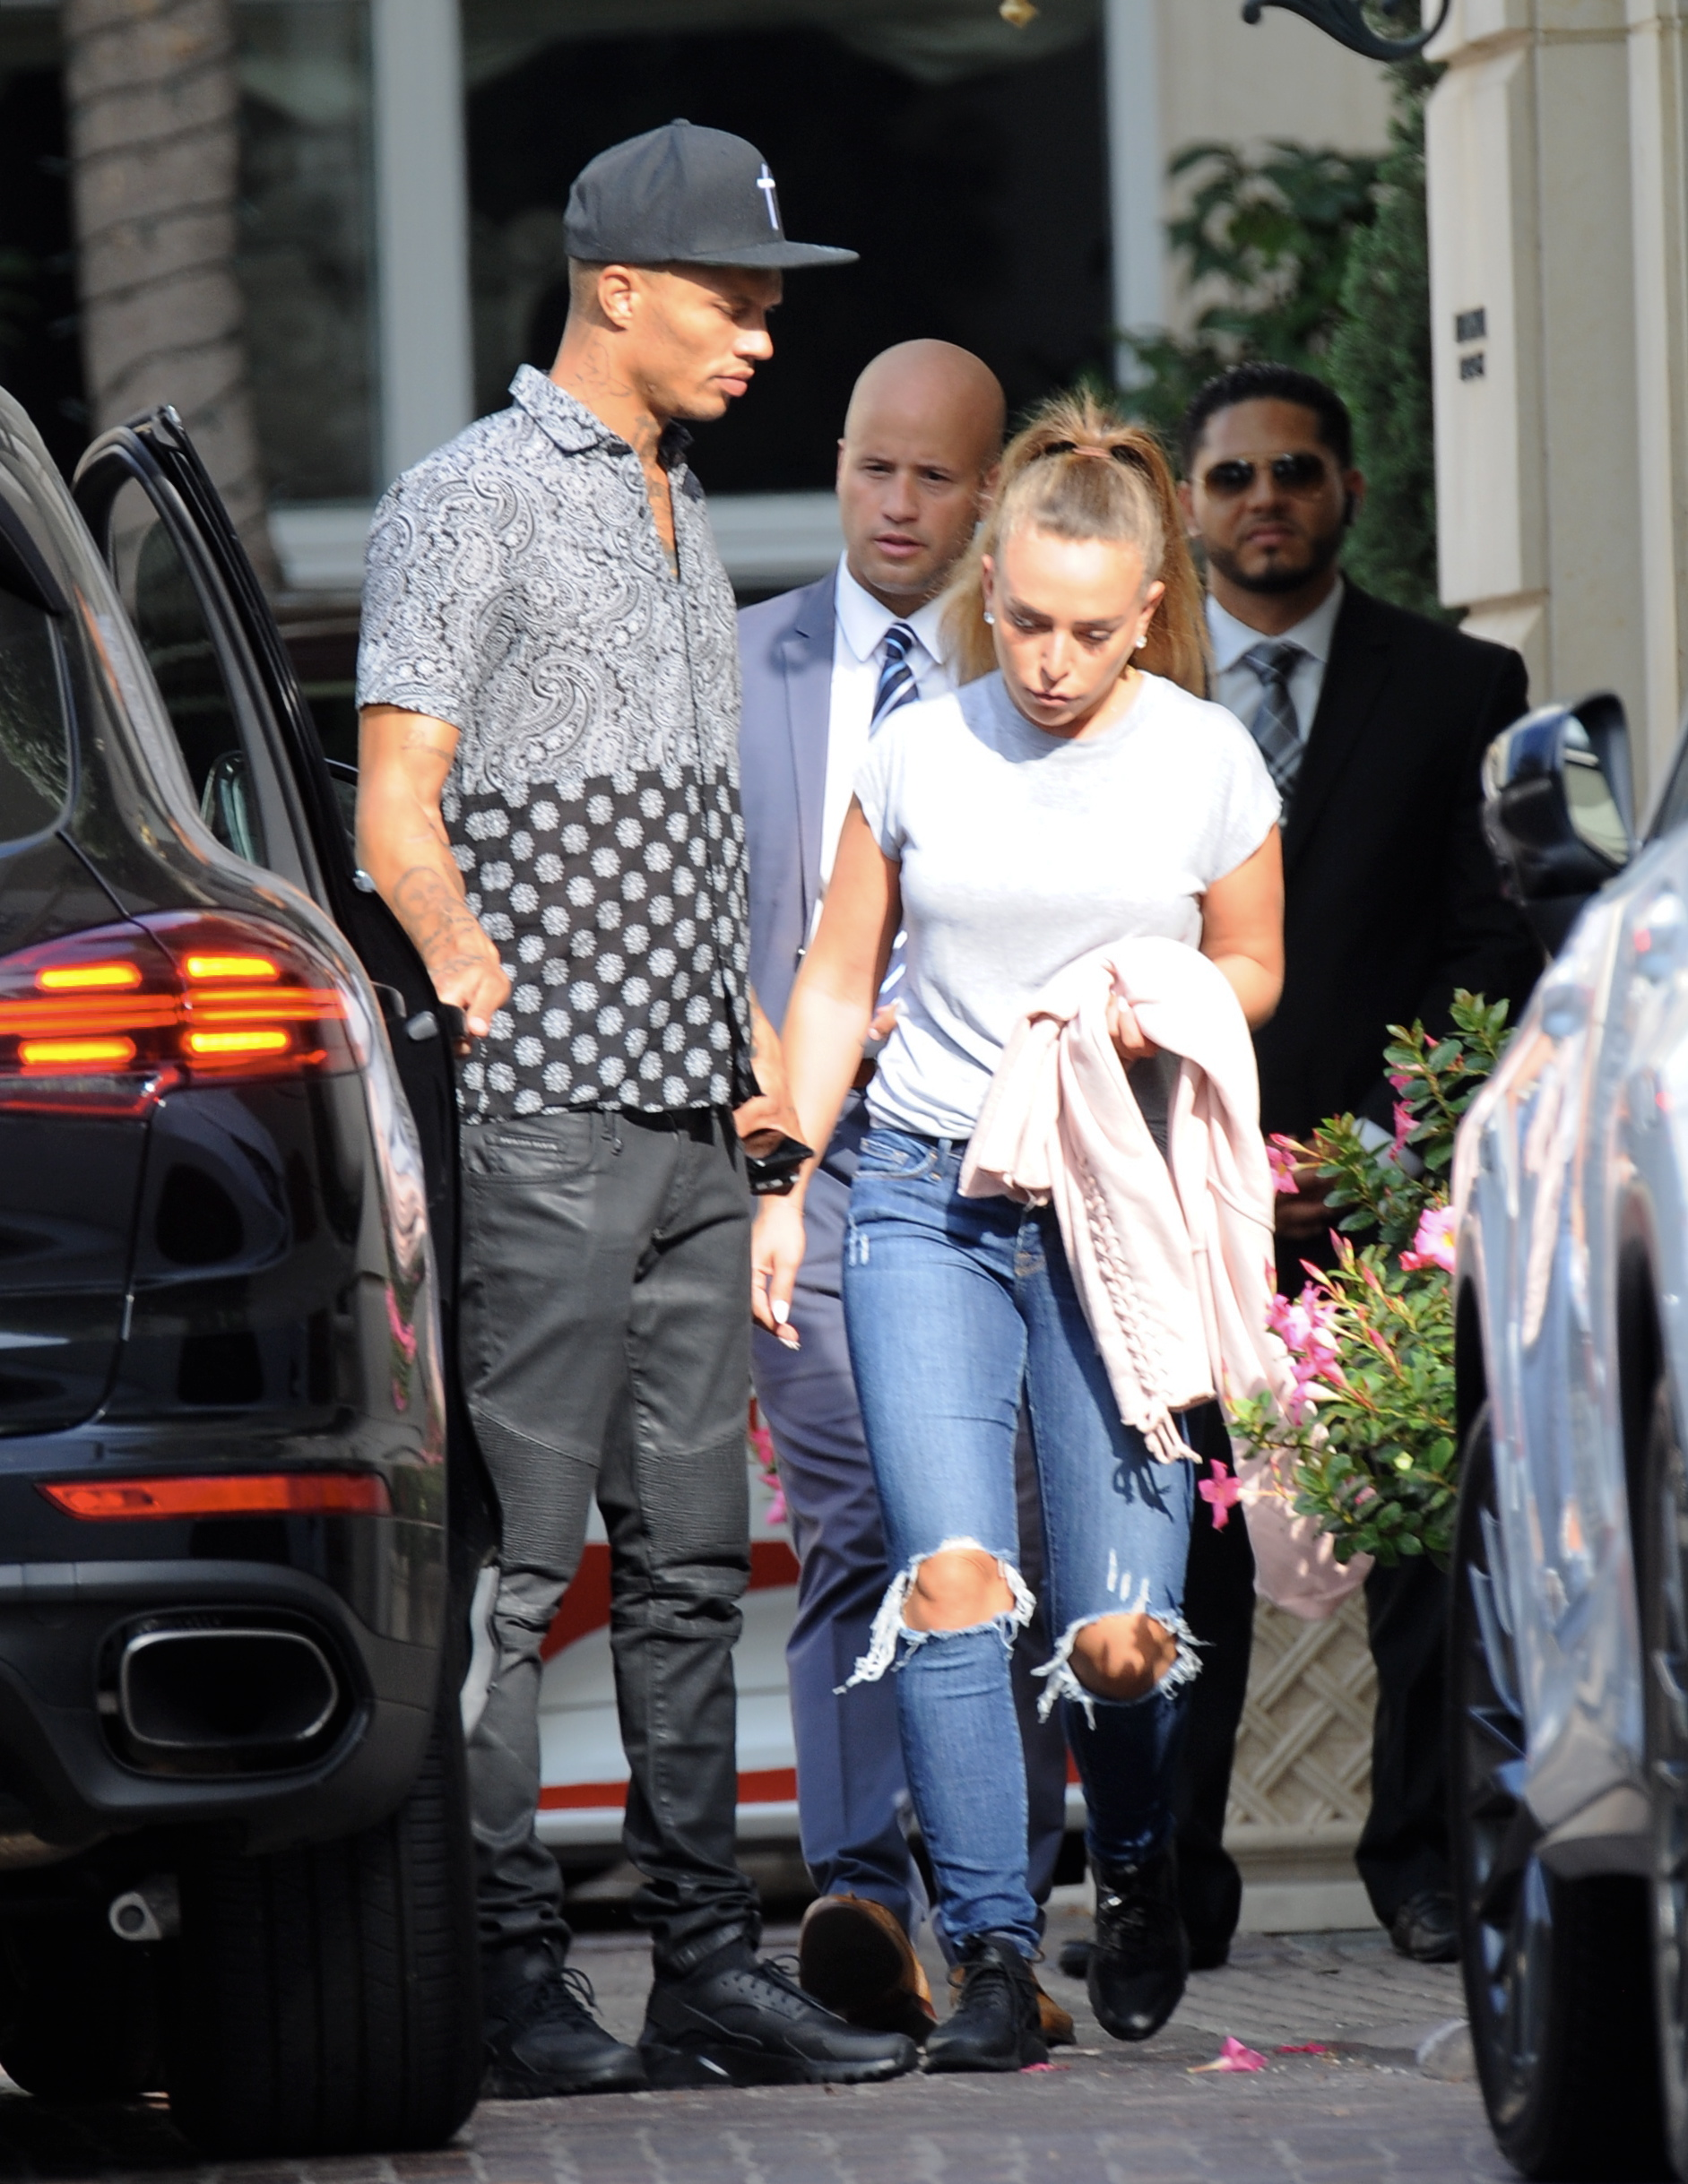 Model Jeremy Meeks and fiancee Chloe Green buying 4 cartloads of goodies at Target for Hurricane Harvey relief. Chloe was seen wearing her new engagement ring while going to a Hurricane Harvey donations party in Los Angeles, California.                                    Featuring: Jeremy Meeks, Chloe Green                  Where: Los Angeles, California, United States                  When: 02 Sep 2017                  Credit: WENN